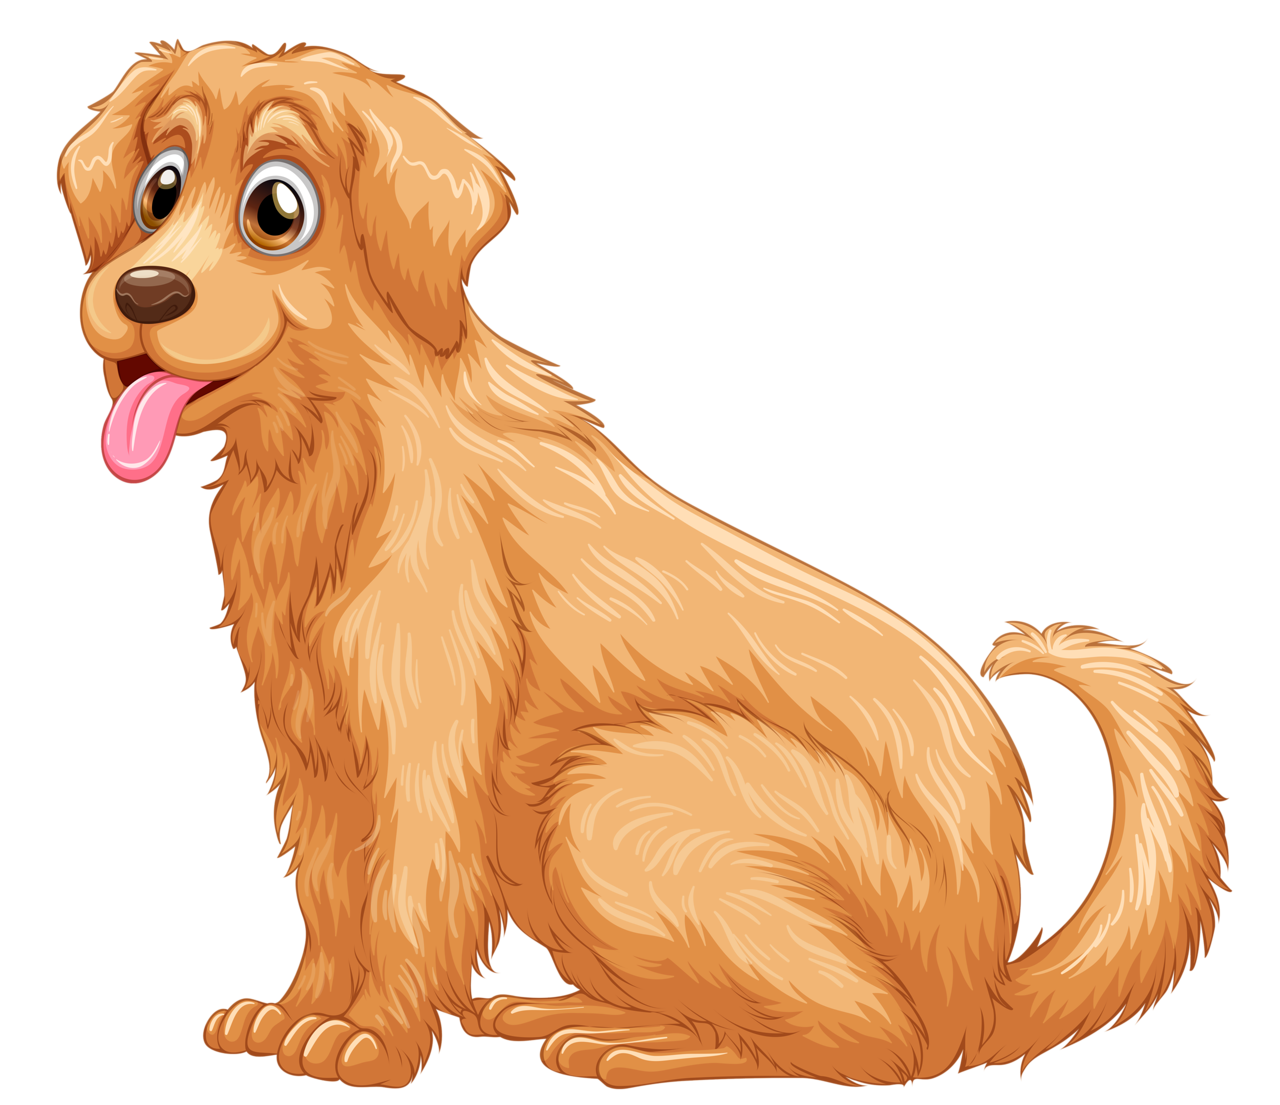 Golden dog clipart banner freeuse library Golden Retriever Puppy Clip art - golden dogs word png download ... banner freeuse library